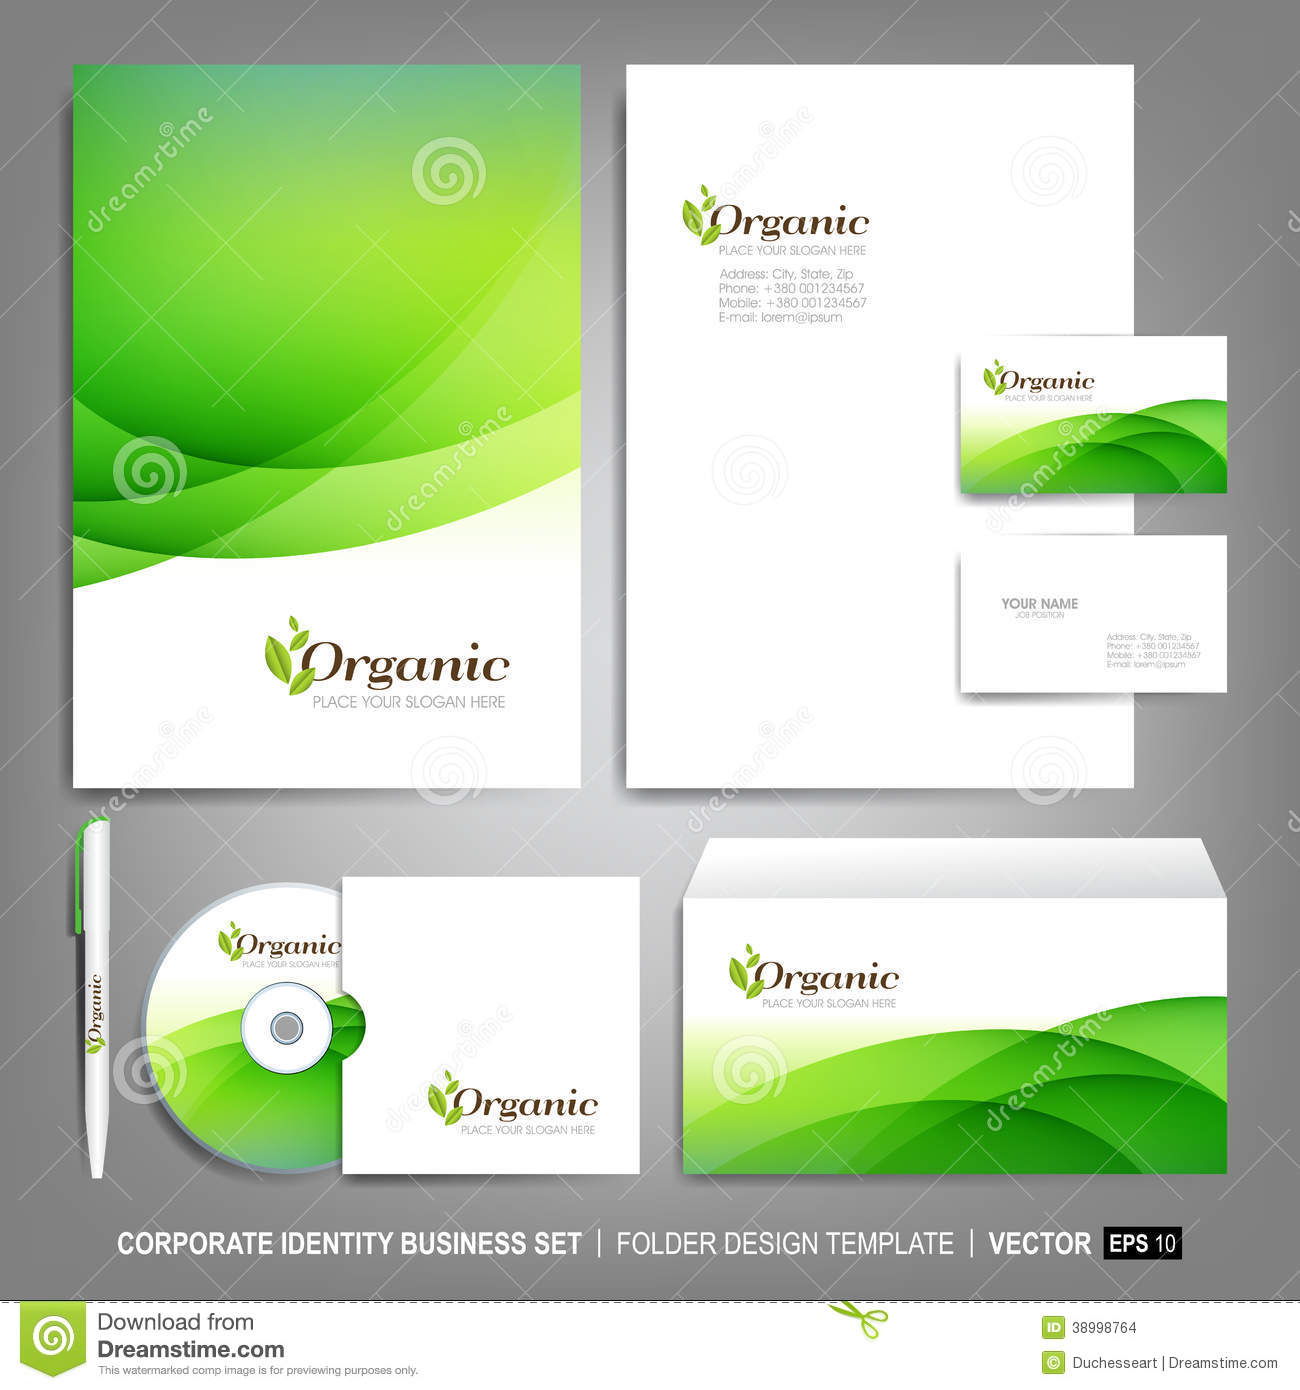 Blank Stationery And Corporate Identity Template Consist: Corporate Identity Template For Business Artworks Stock